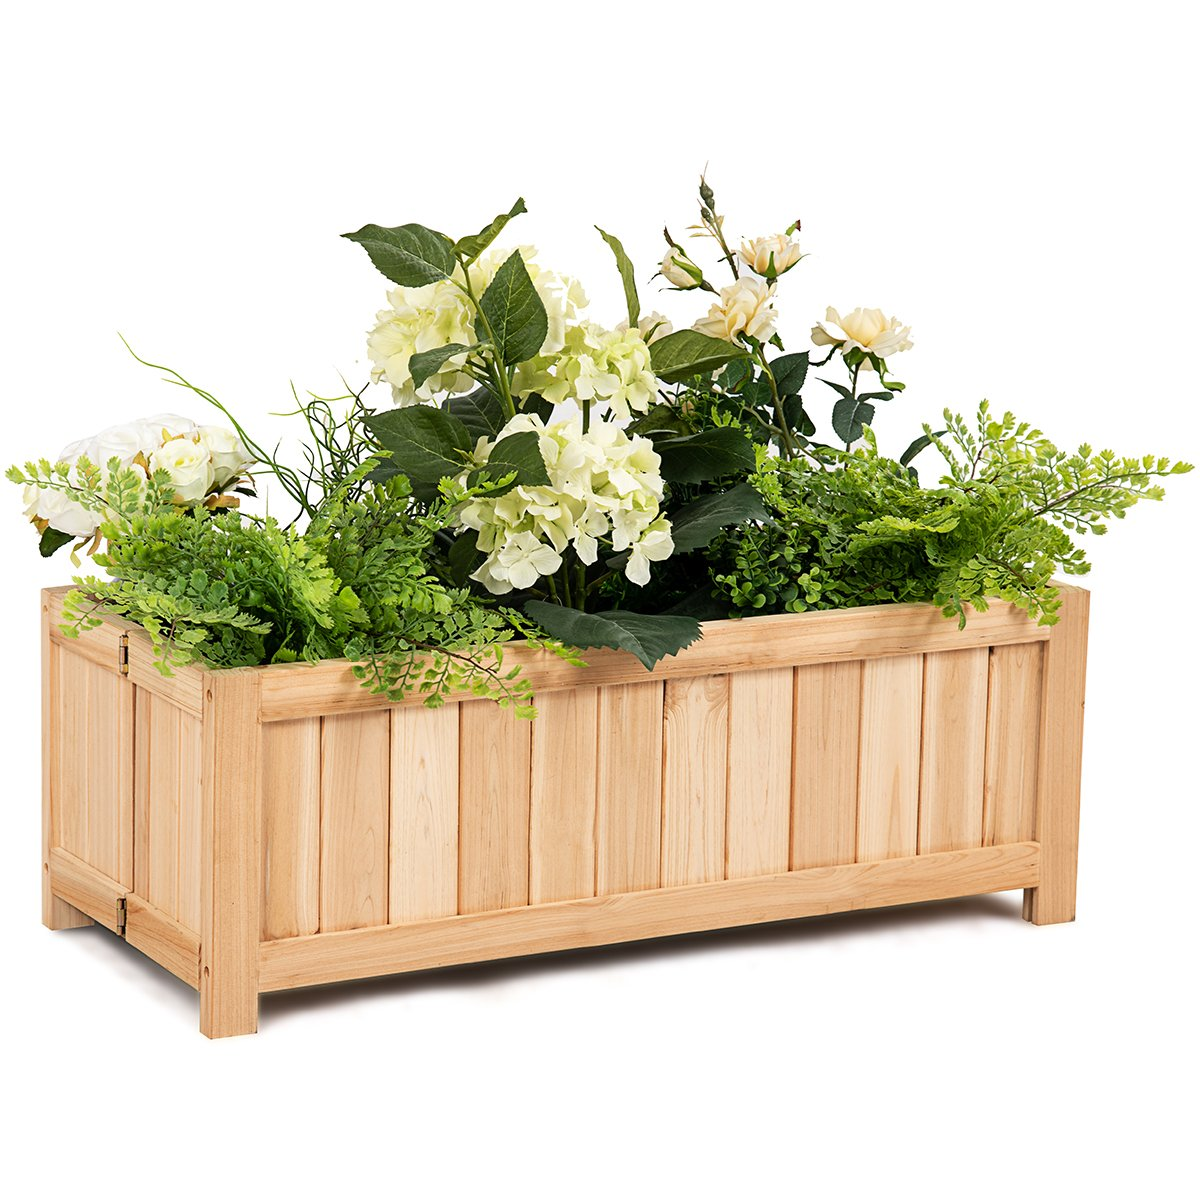 Giantex Raised Flower Planter Box Portable Folding Vegetable Patio Lawn Garden Backyard Elevated Outdoor Wood Planter Boxes, 27.5'' Lx12 Wx10 H(Natural Rectangle)